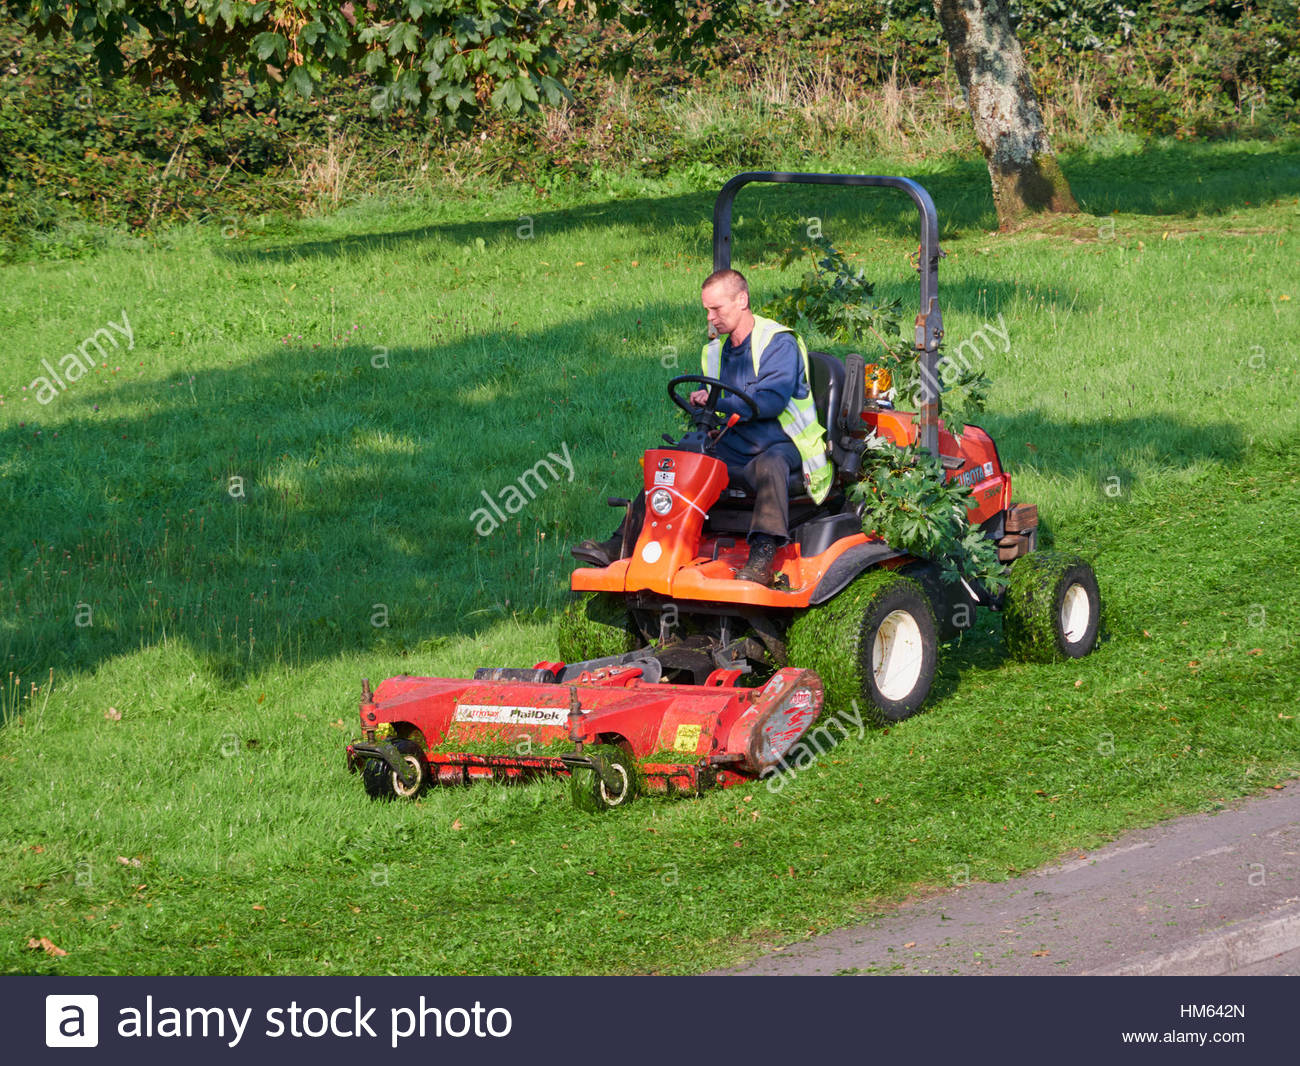 Utility Worker Of For The Local Council With Lawn Mower